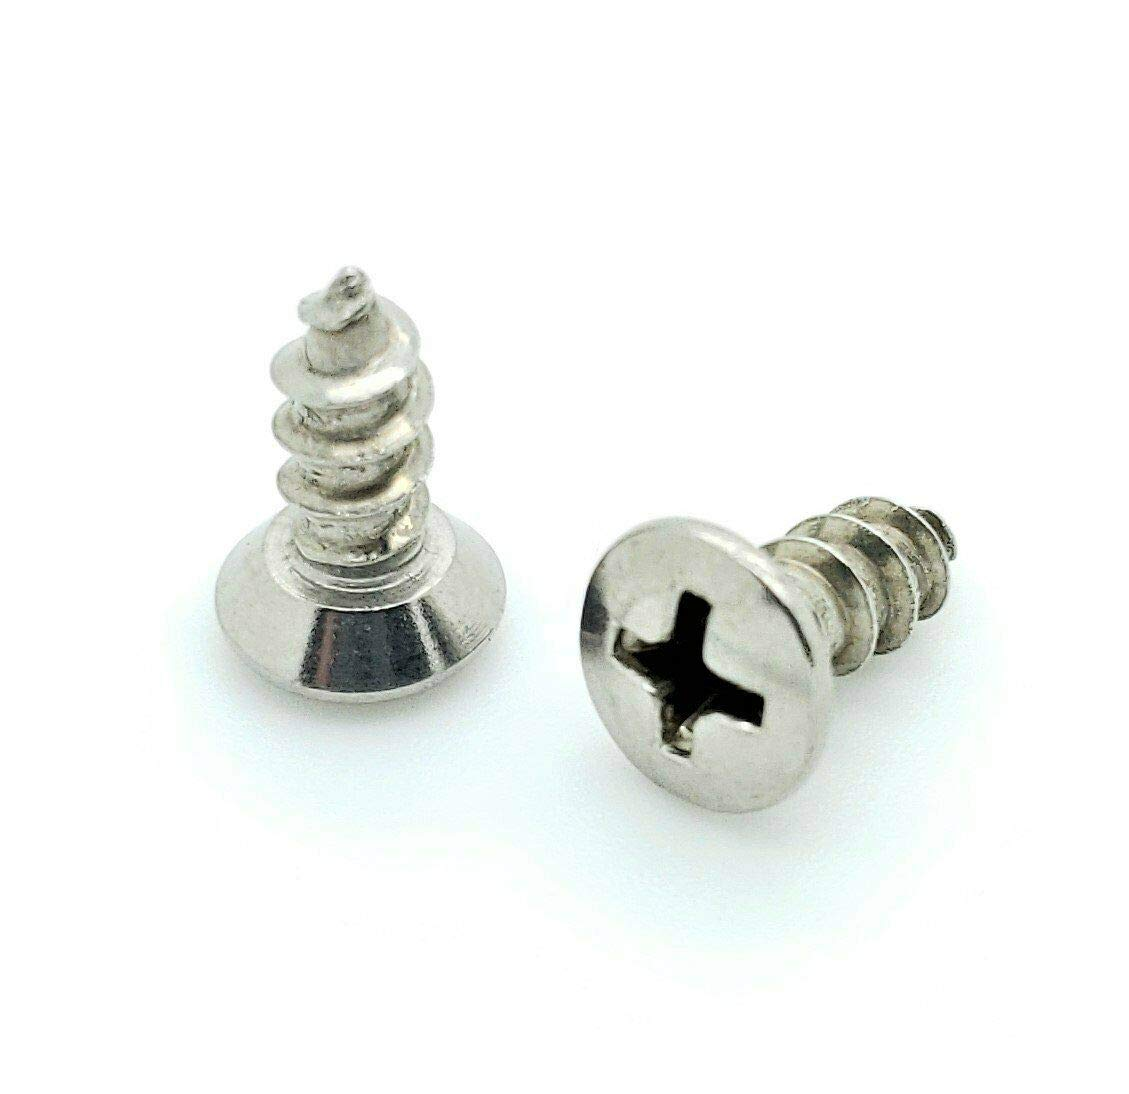 BCP703 200 Qty #10 x 1//2 Oval Head 304 Stainless Phillips Head Wood Screws - Durable and Sturdy Good Holding Power in Different Materials